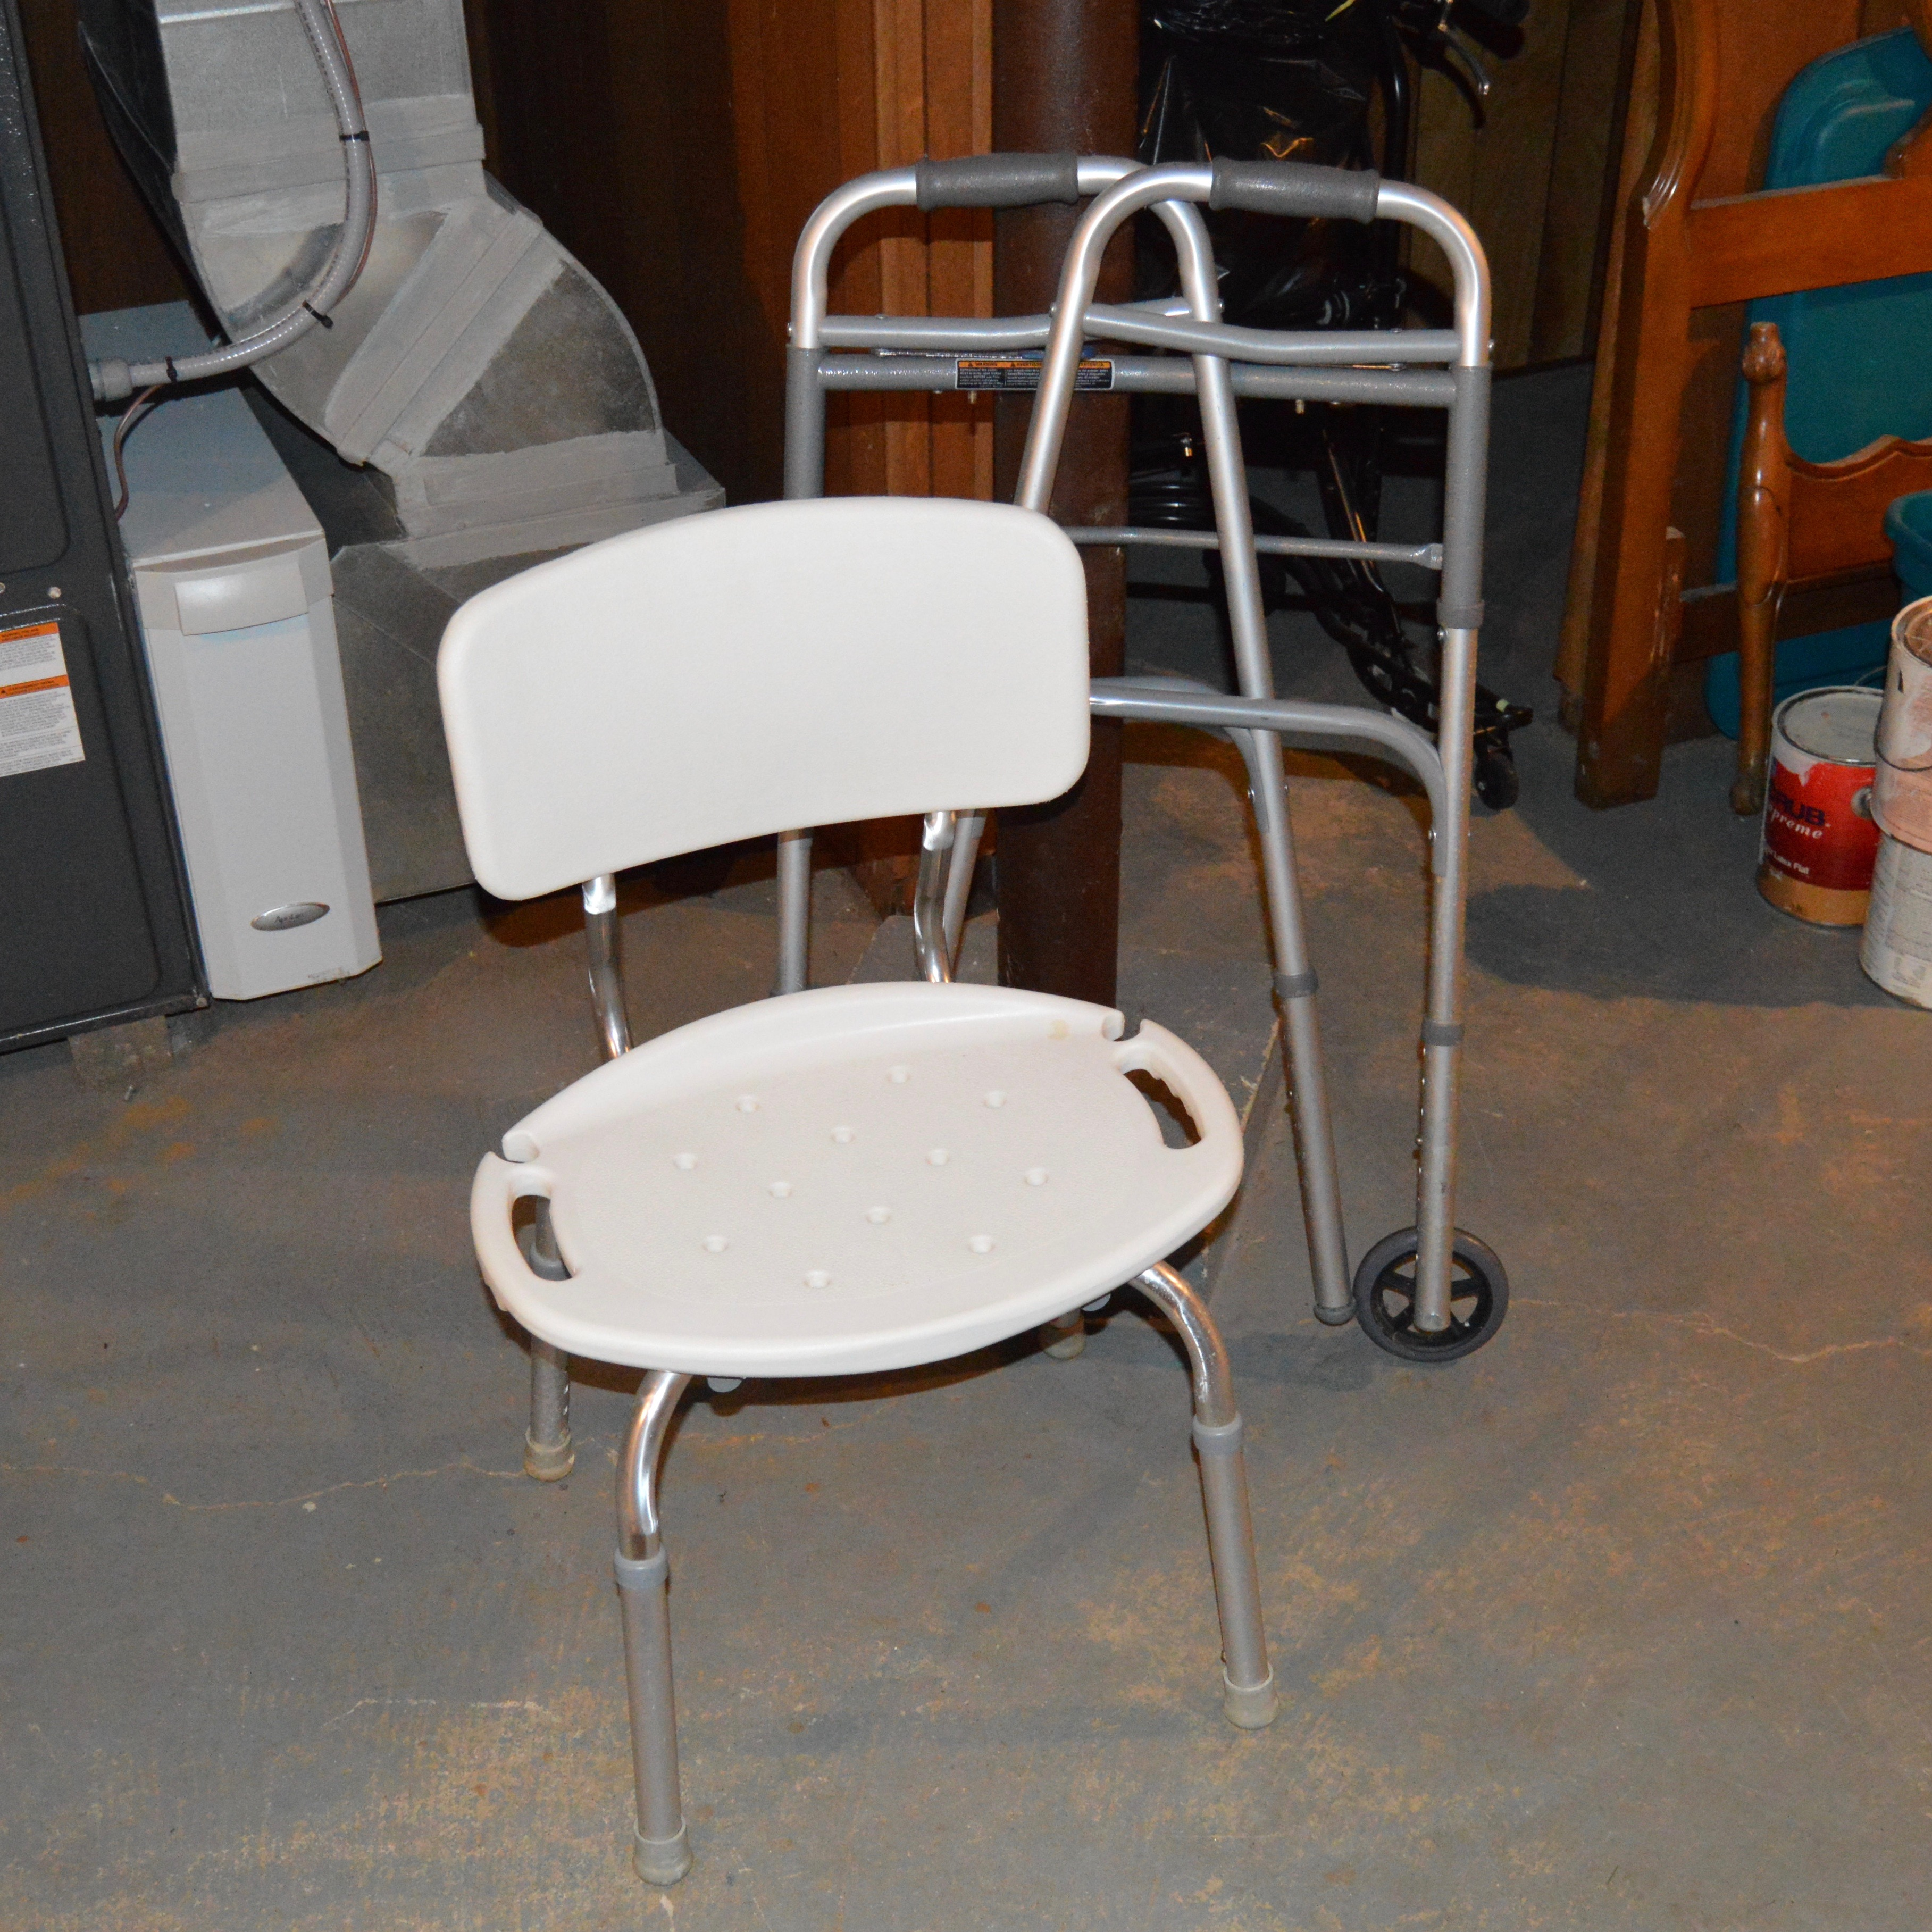 rubbermaid shower chair replacement parts accent bedroom chairs and invacare walker ebth